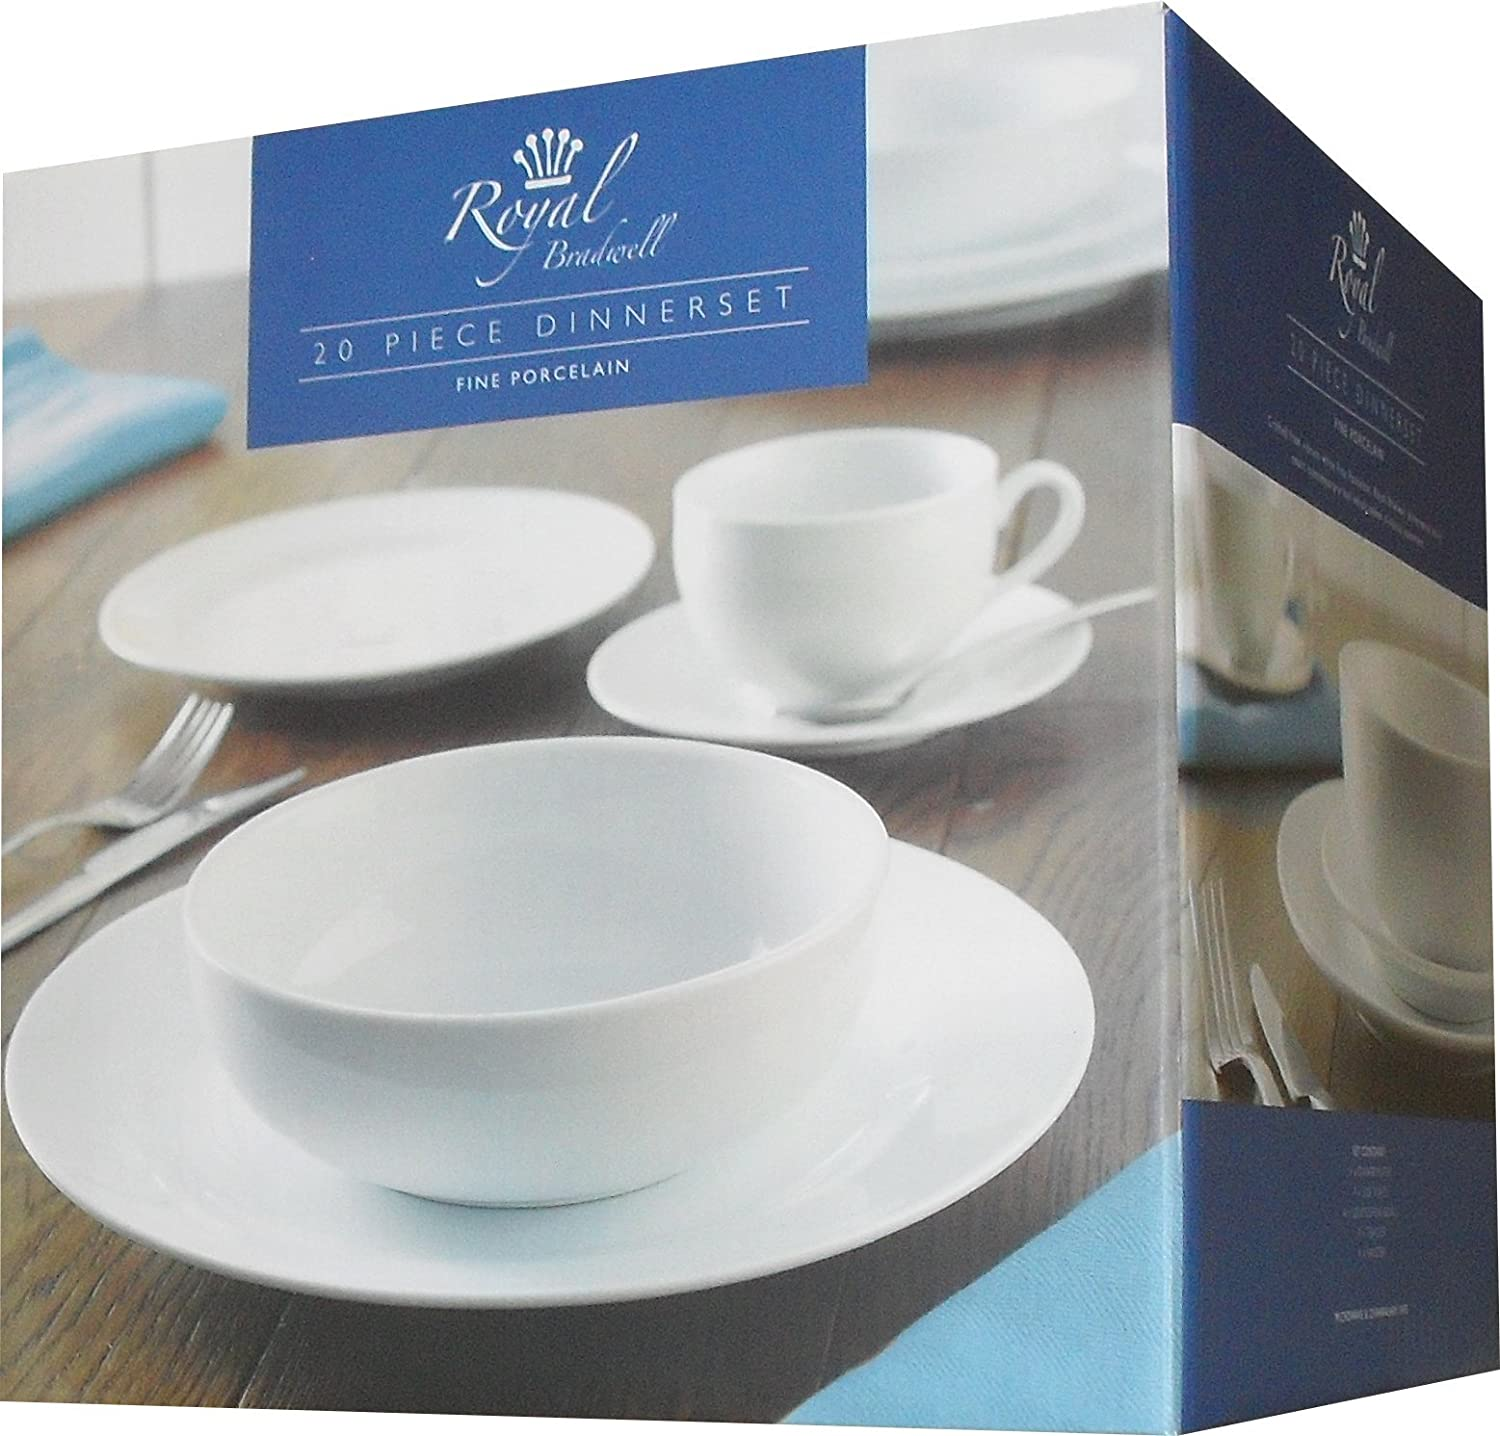 Rayware 20-Piece Royal Bradwell Dinner Service White Amazon.co.uk Kitchen u0026 Home & Rayware 20-Piece Royal Bradwell Dinner Service White: Amazon.co.uk ...